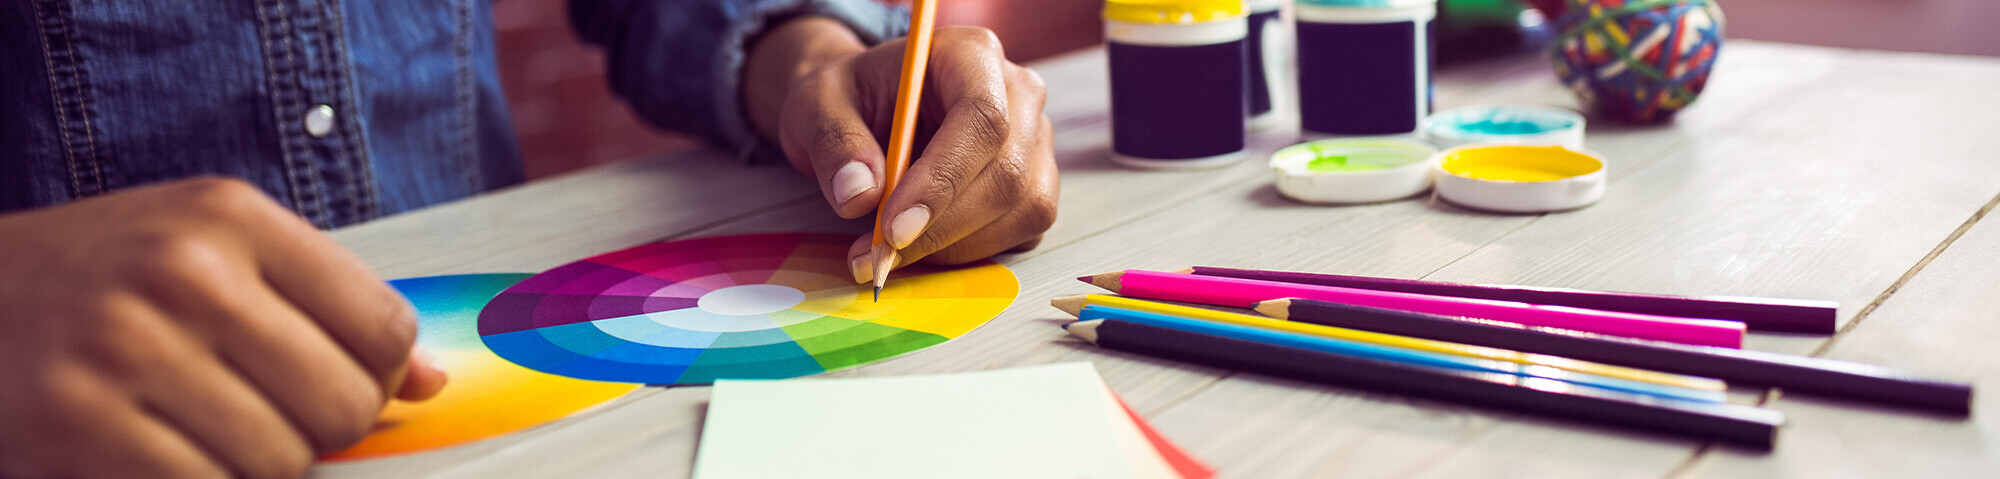 The Top 4 Questions About Graphic Design